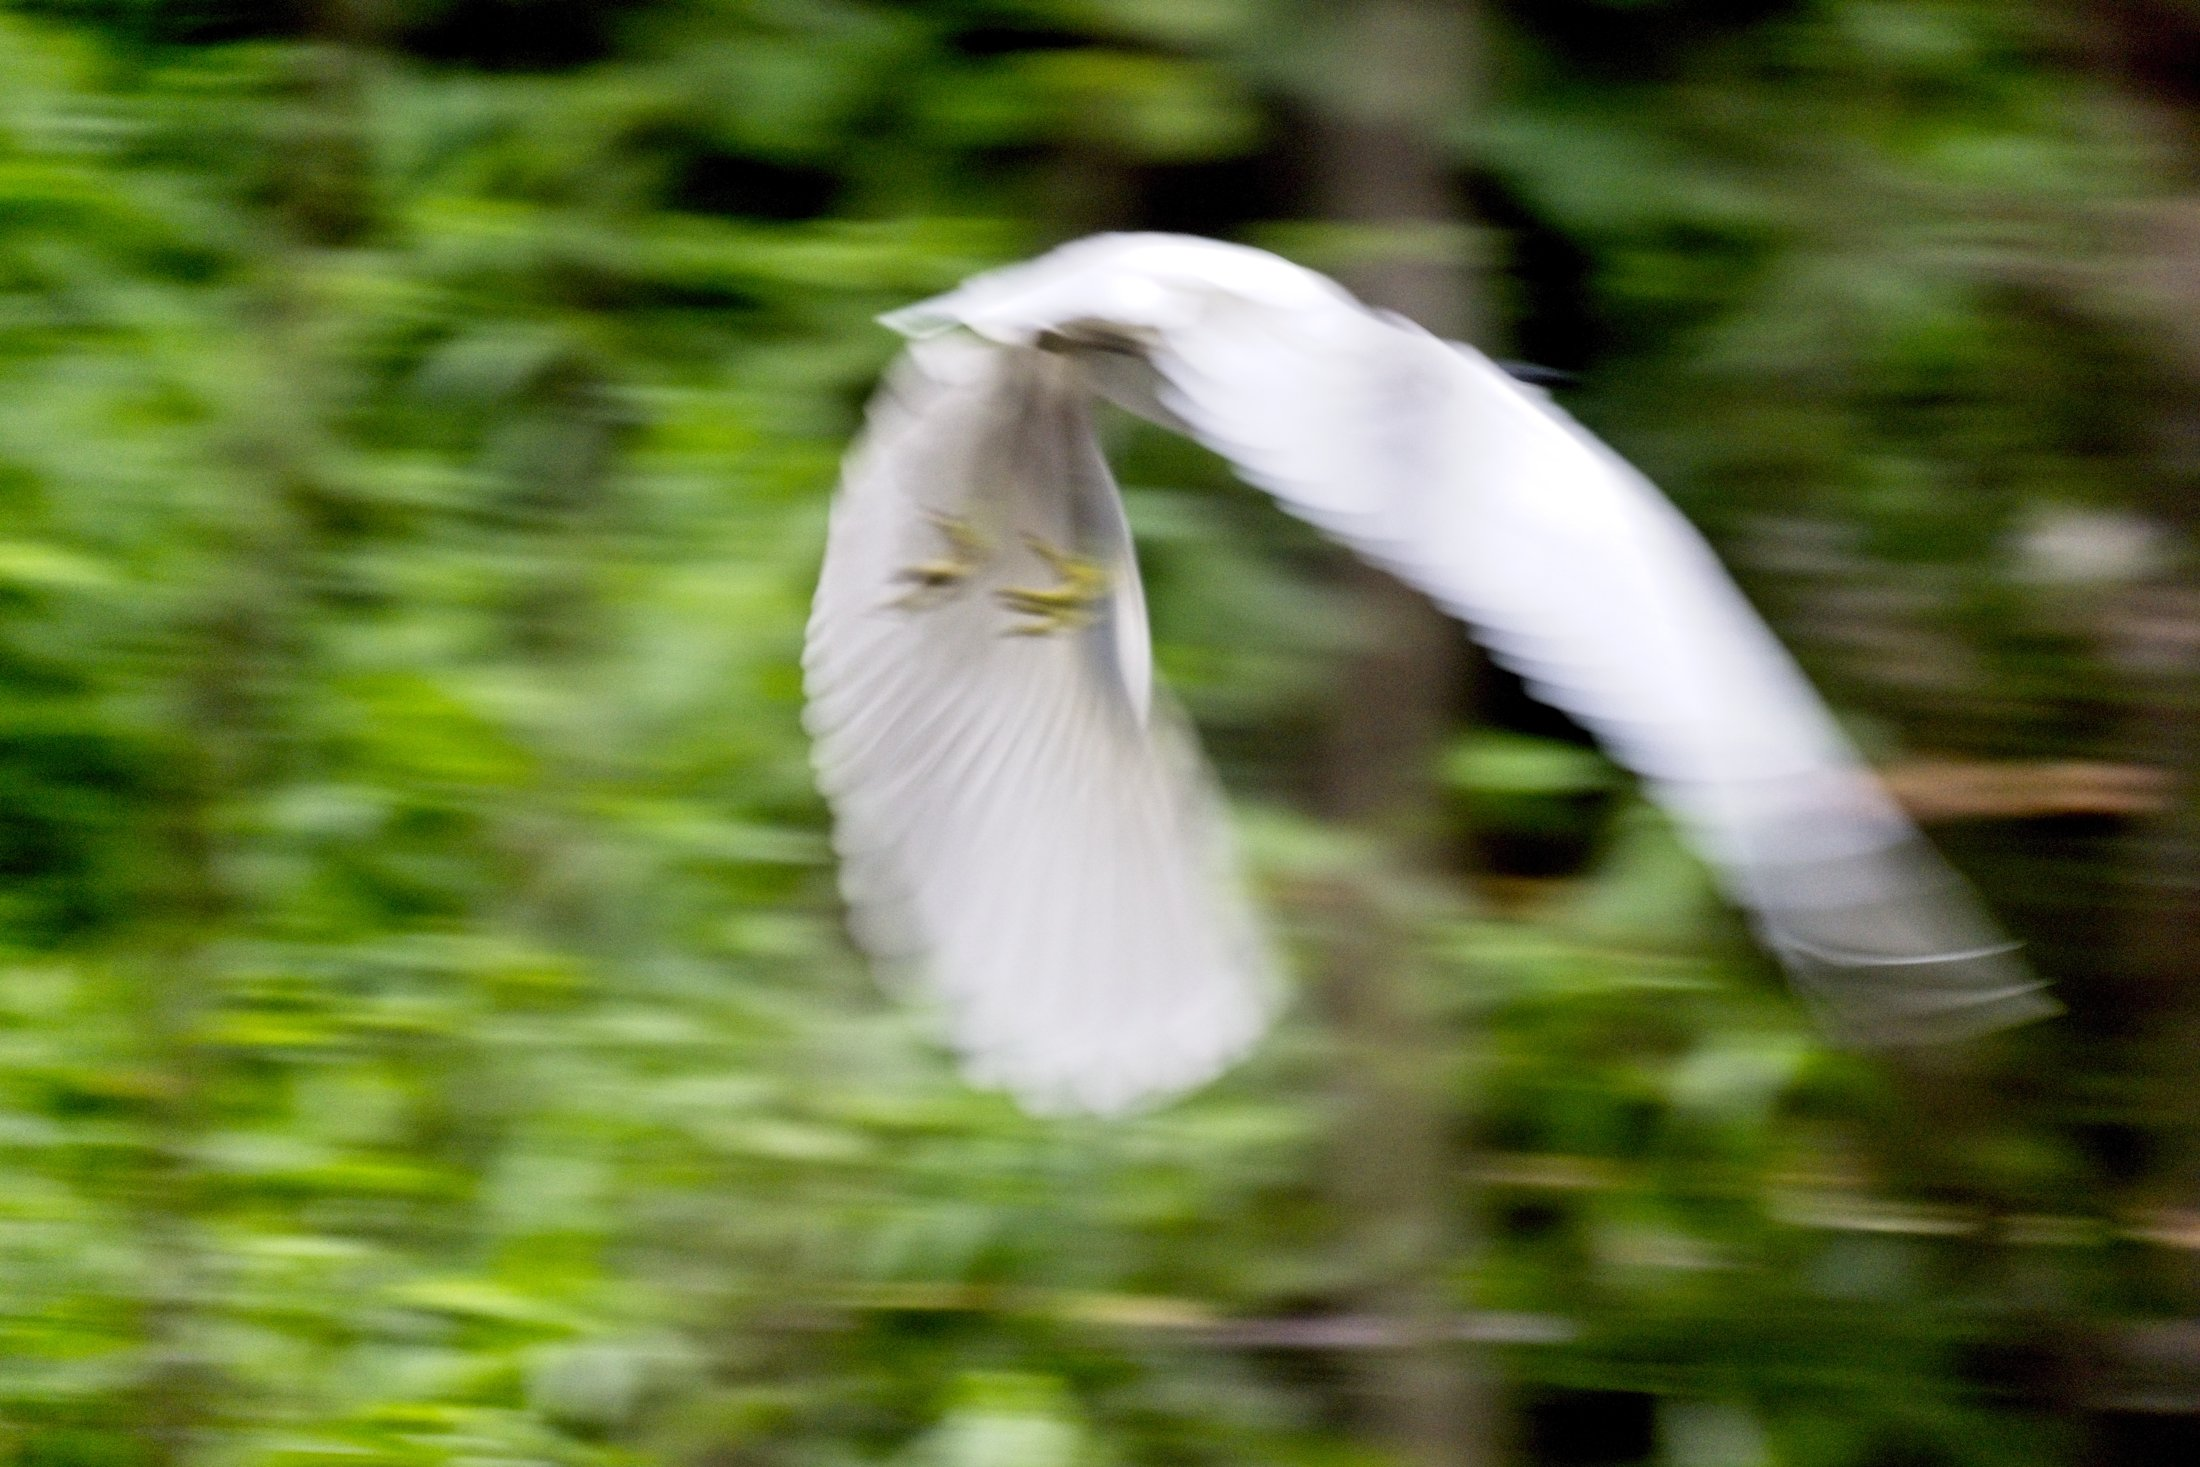 Little Egret - Egretta garzetta - in flight